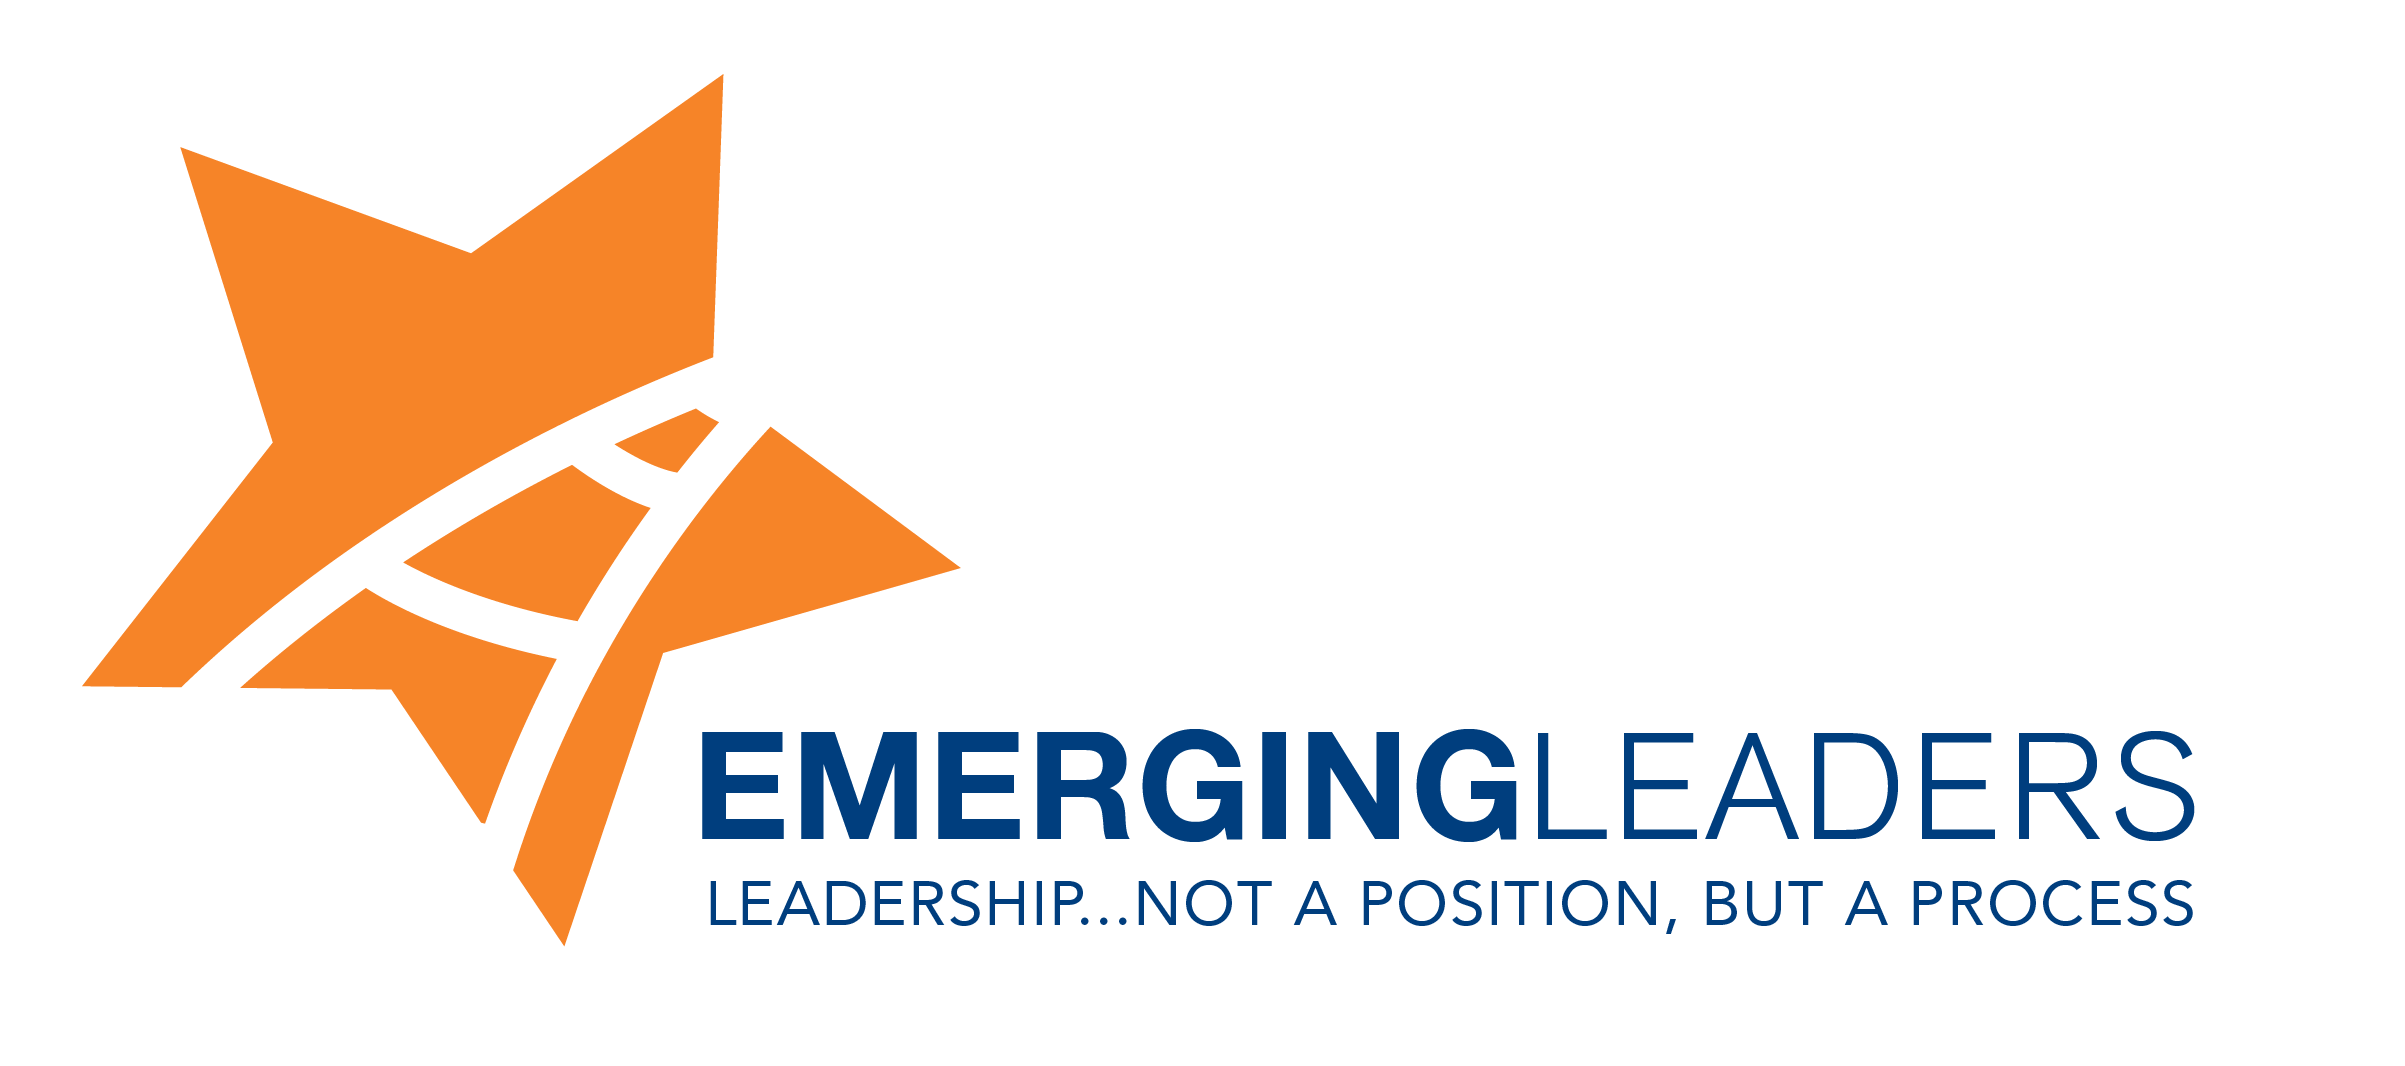 suny new paltz emerging leaders - The SUNY New Paltz Emerging Leaders Program is a fun and dynamic learning opportunity that encourages first-year students to explore an understanding of self, others, and what it means to be a productive community member.